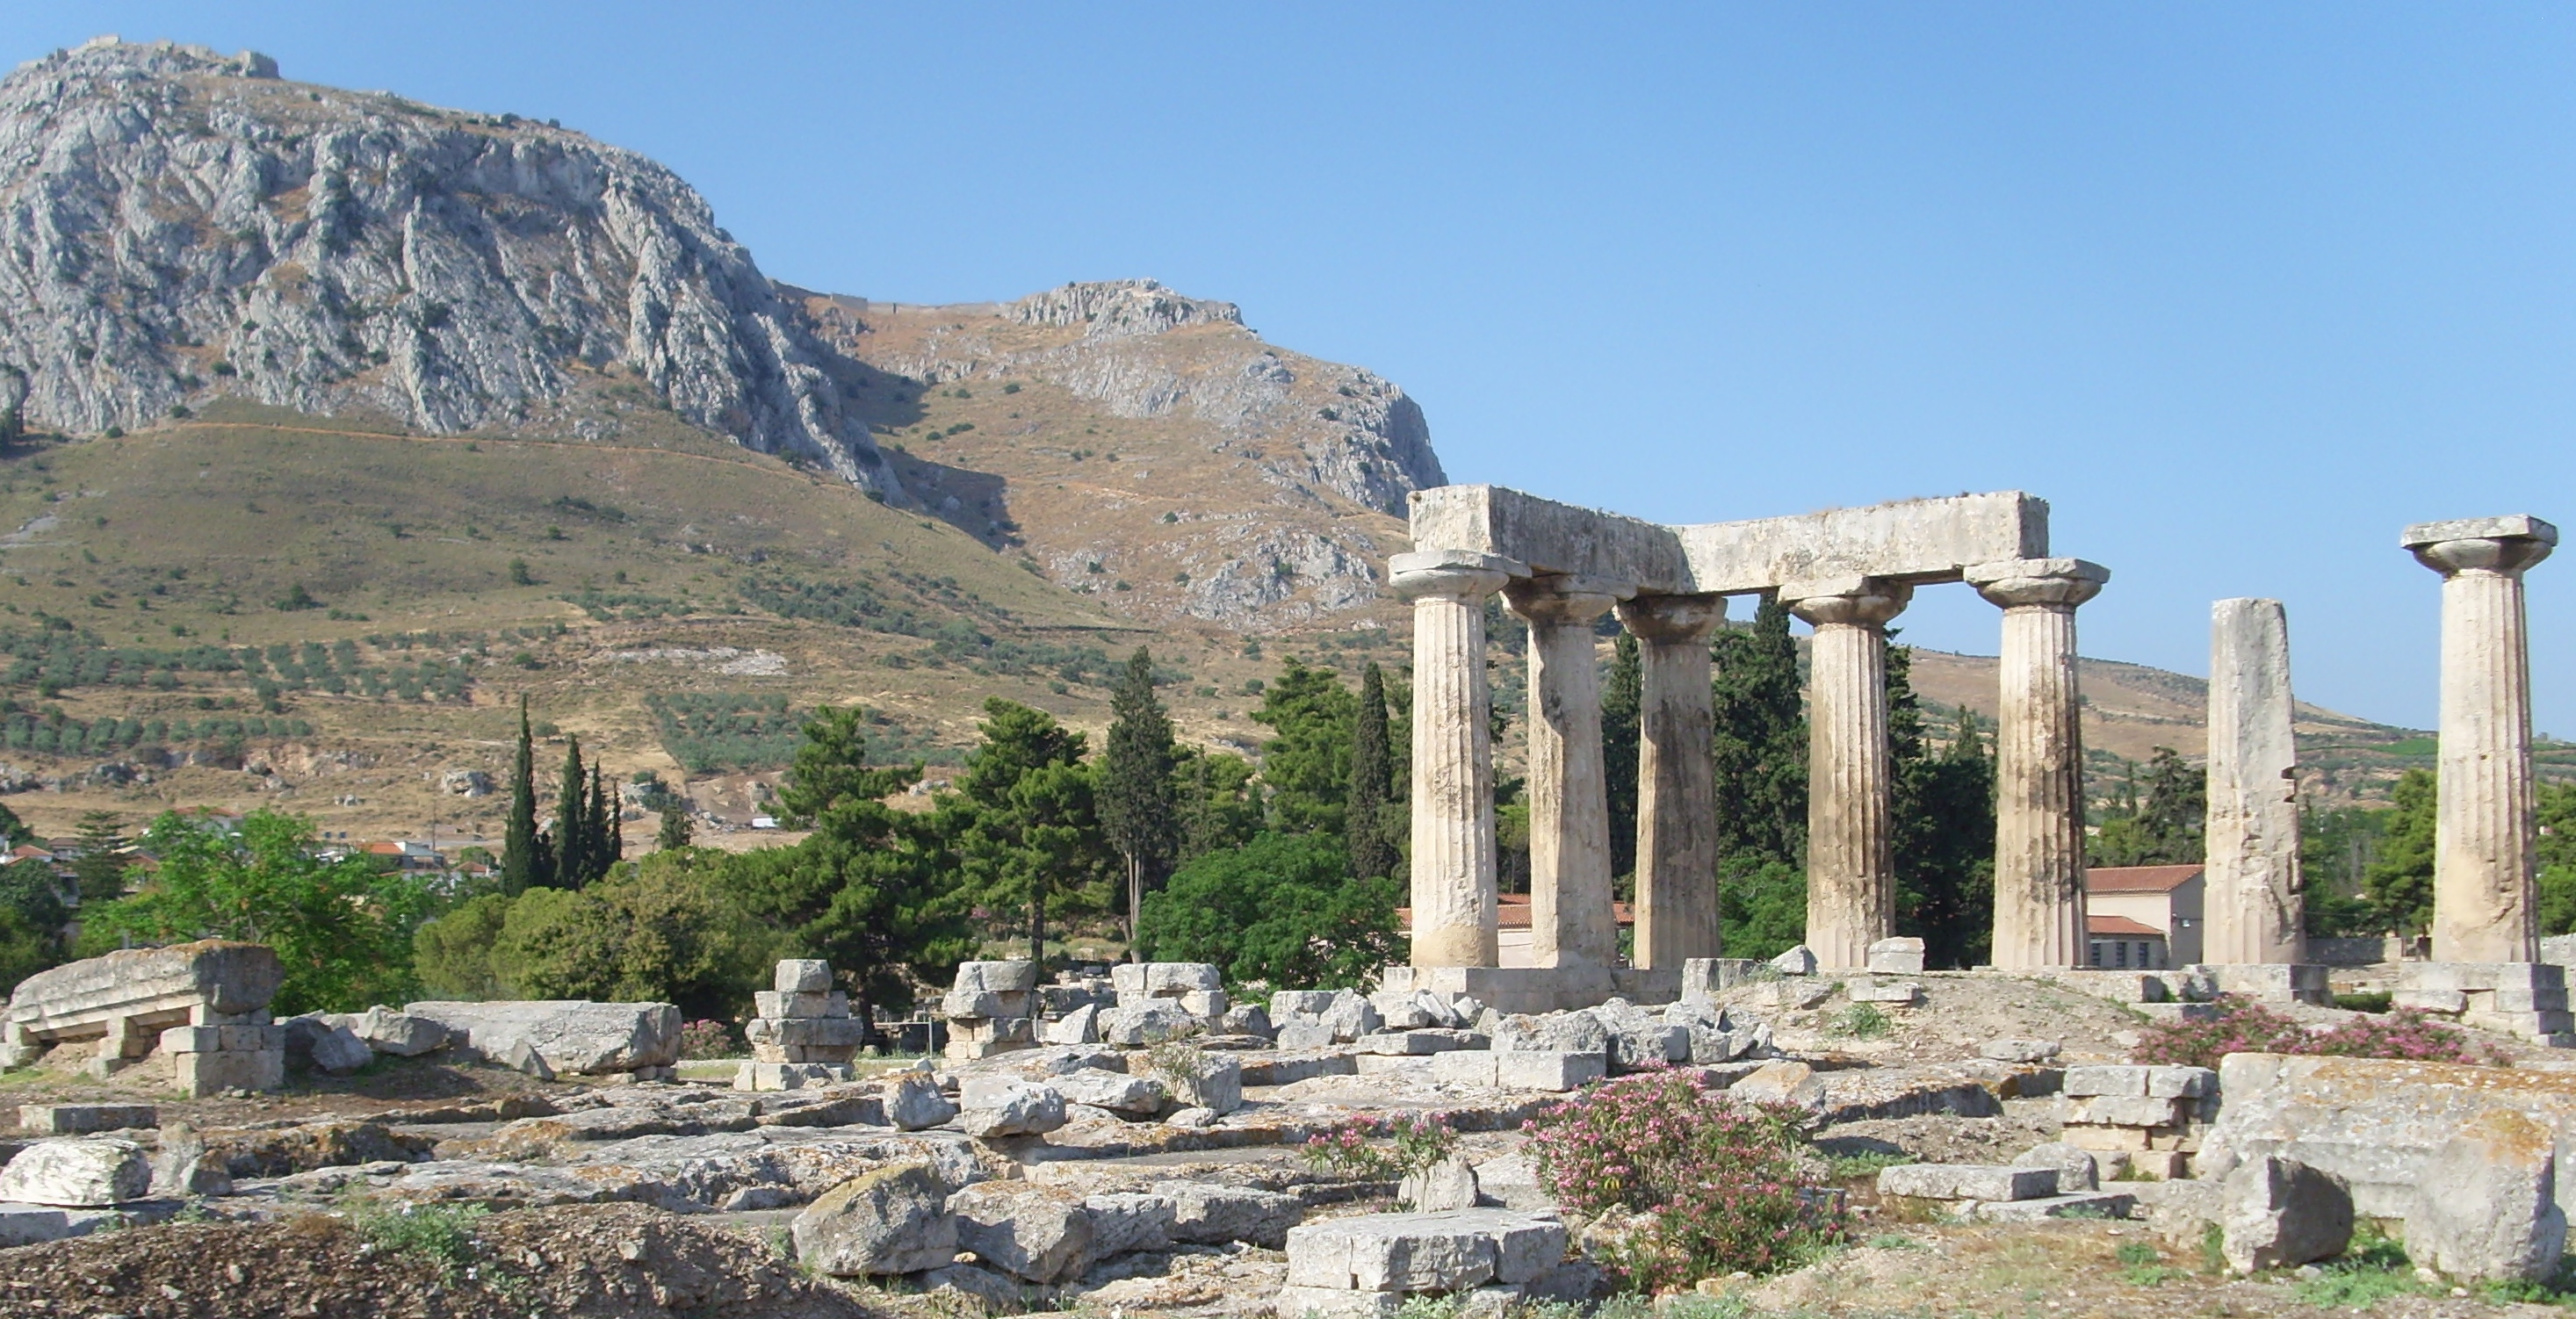 Temple of Apollo, Corinth, Greece, Acrocorinth in the background